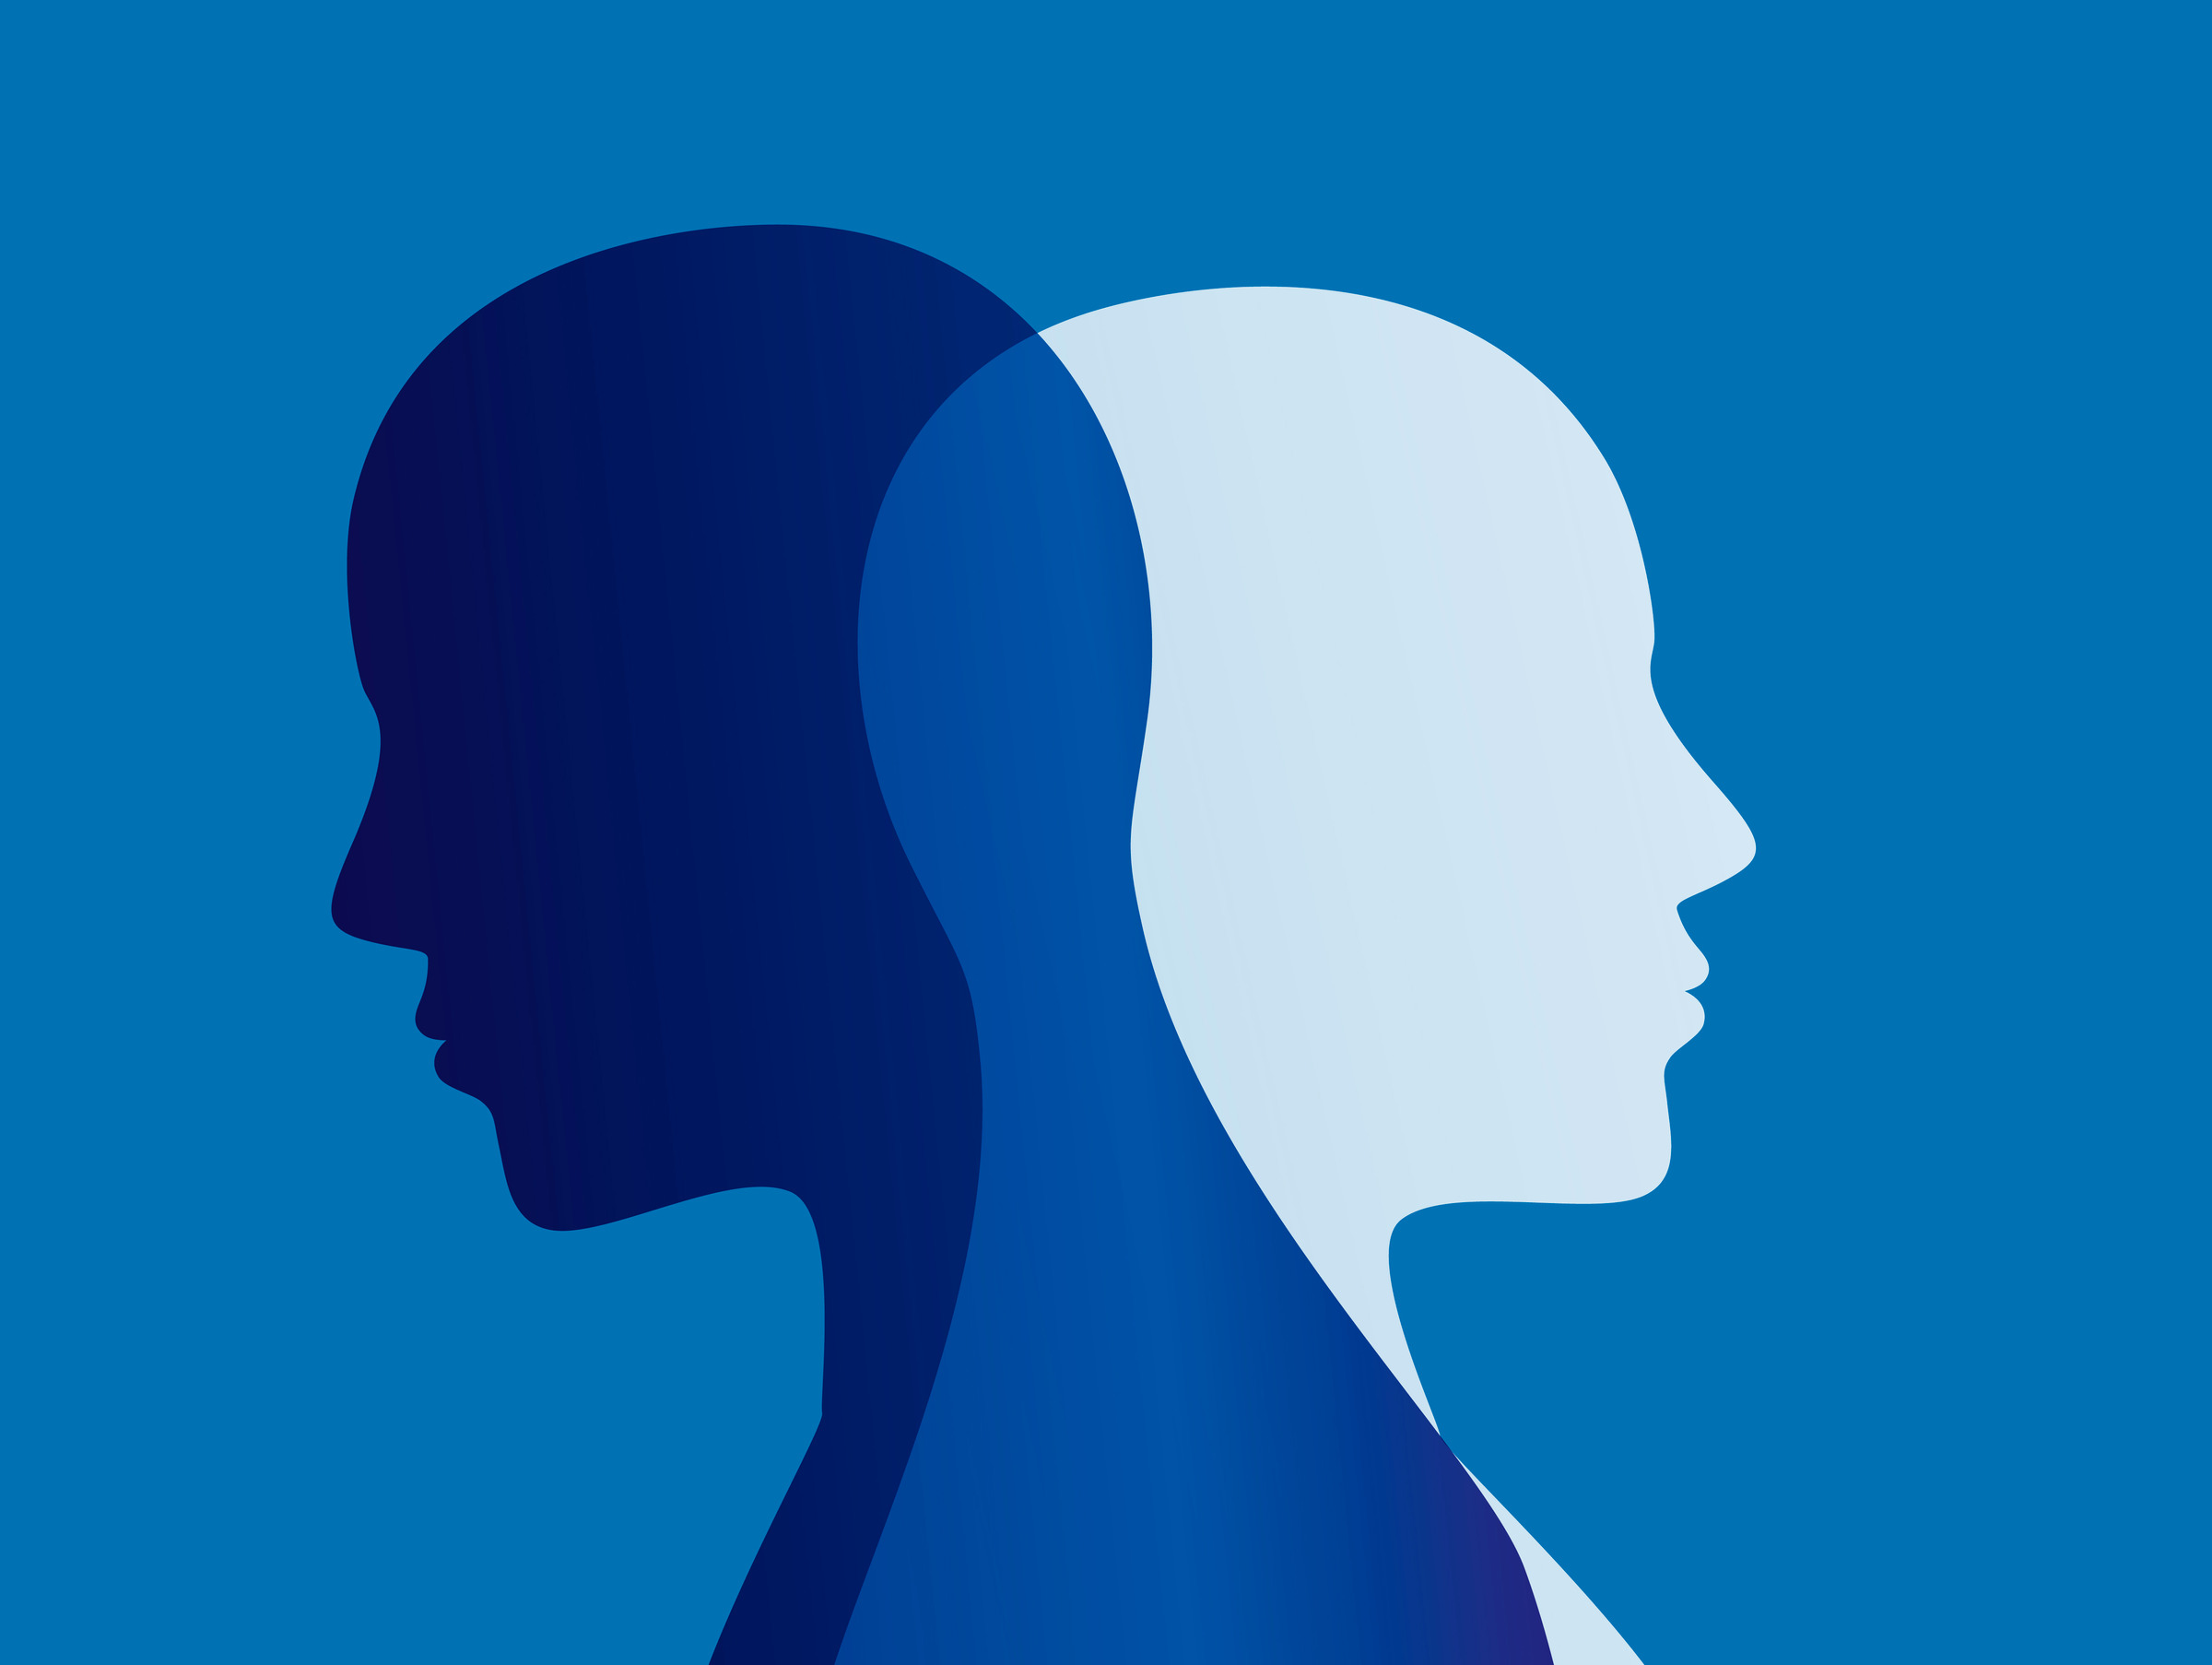 Understanding the signs and symptoms of bipolar disorder